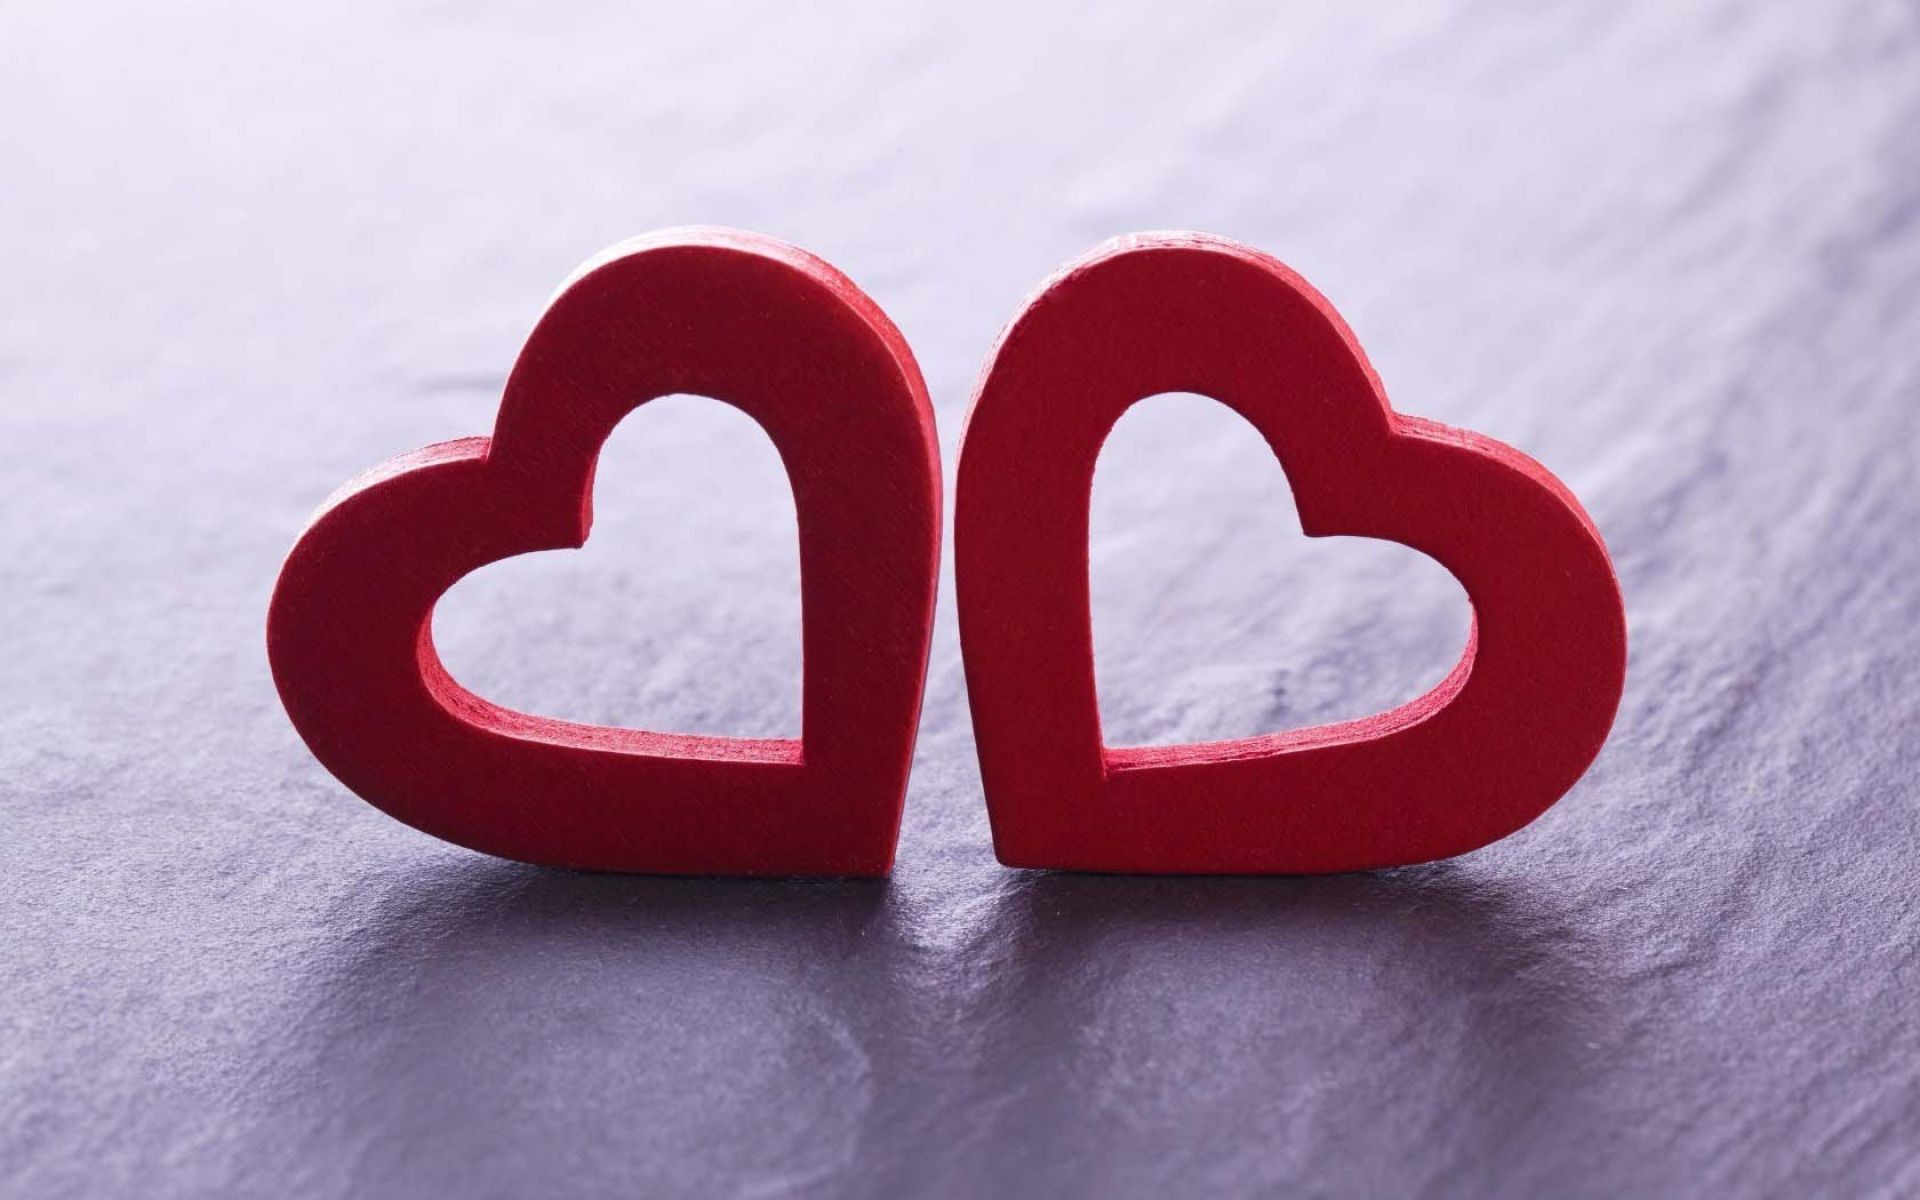 1920x1200 Red Hearts 3D | HD Love Wallpaper Free Download ...